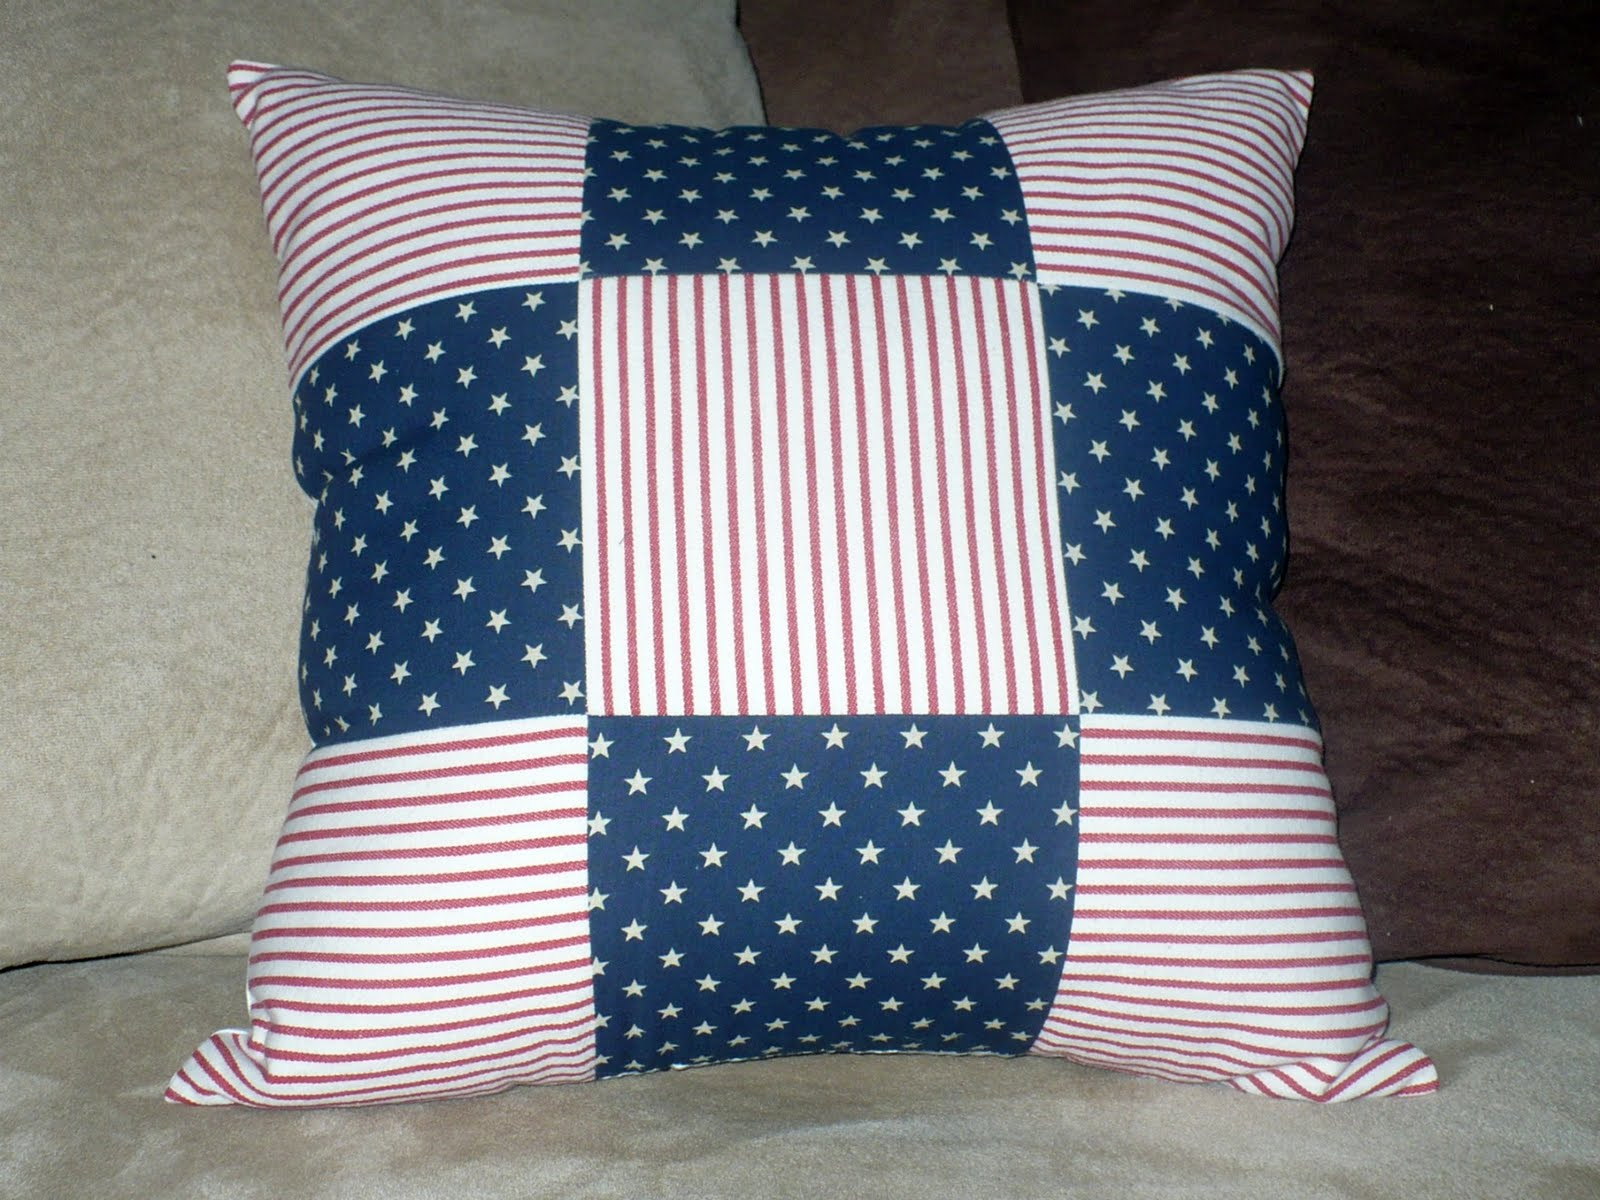 The Polka Dot Umbrella Patriotic Pillows